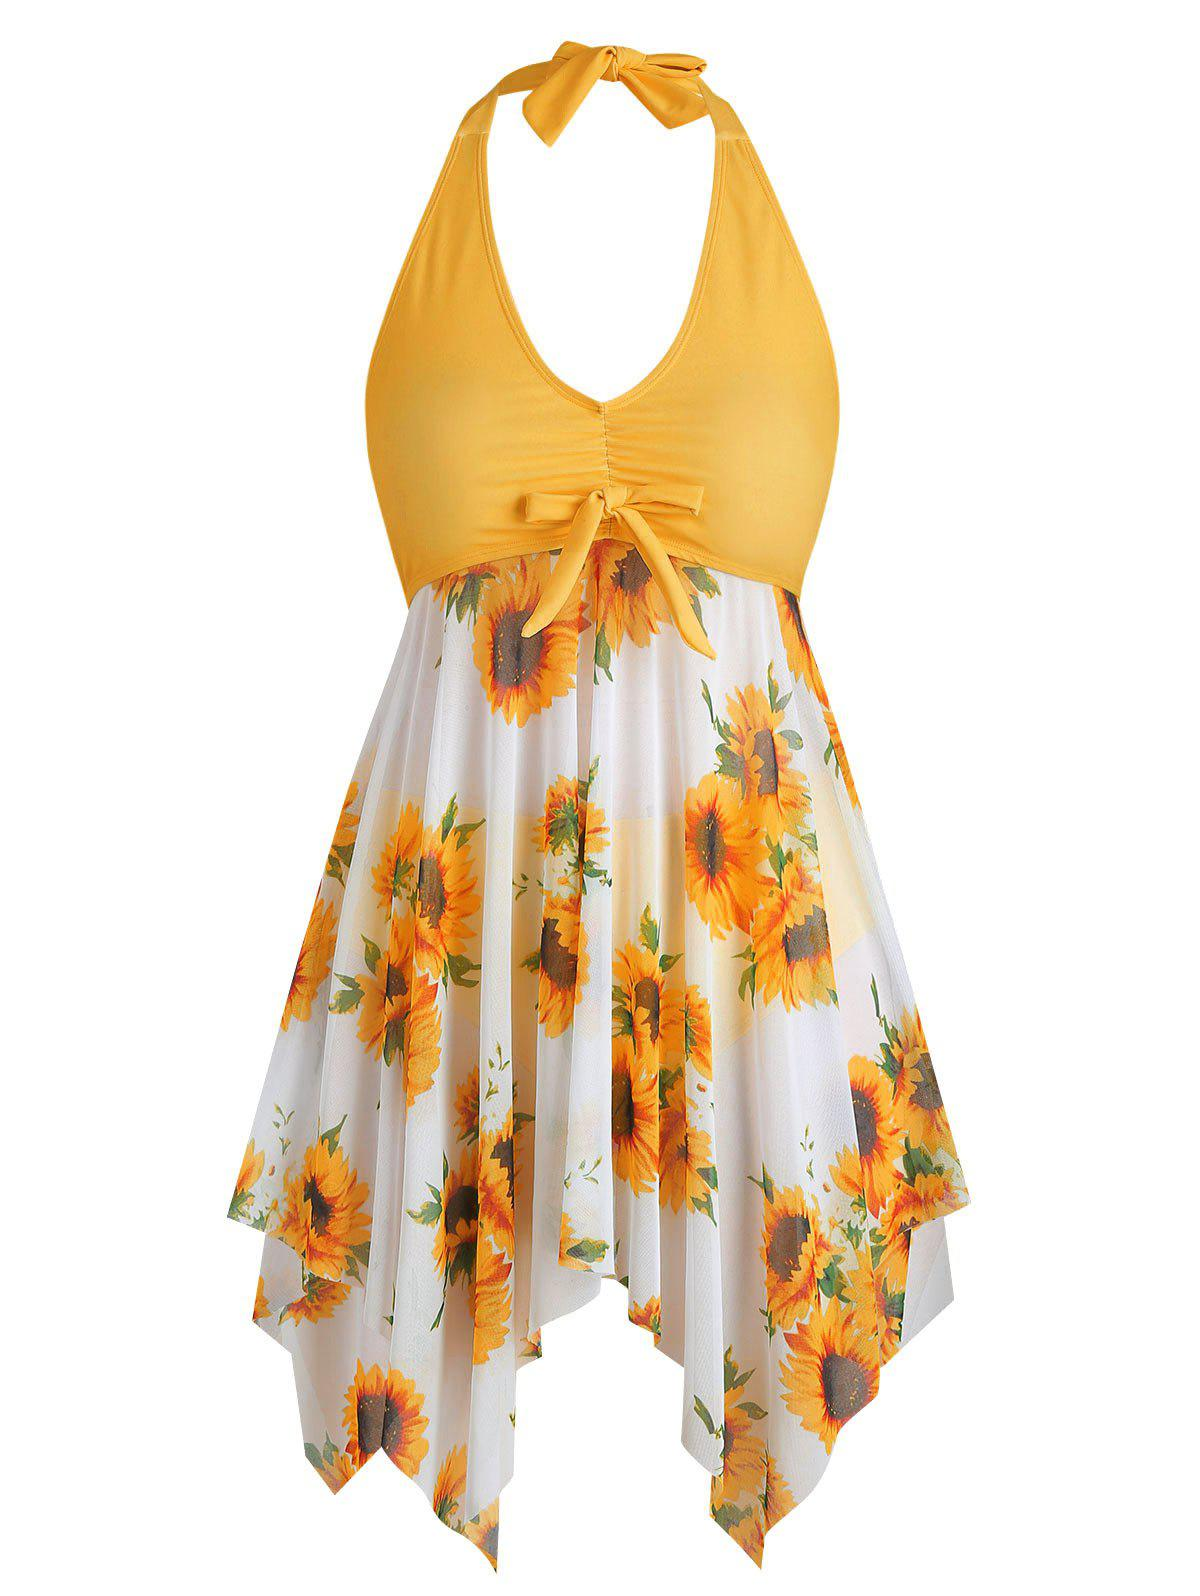 Discount Bowknot Contrast Sunflower Floral Butterfly Plus Size Tankini Set